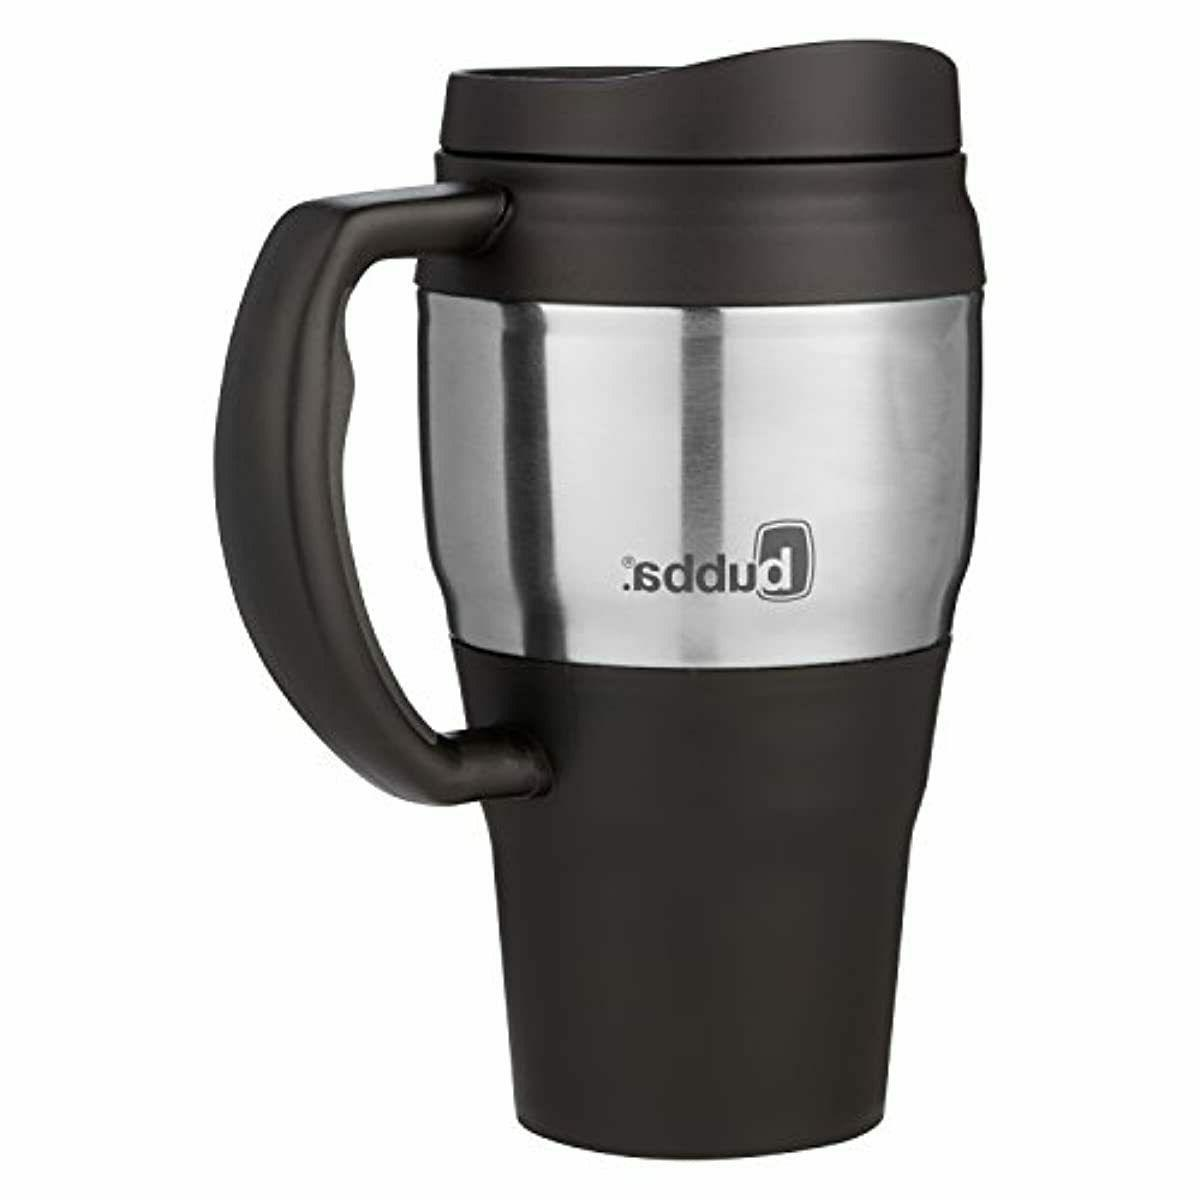 32 Oz Mug Stainless Steel Thermal Coffee Cup